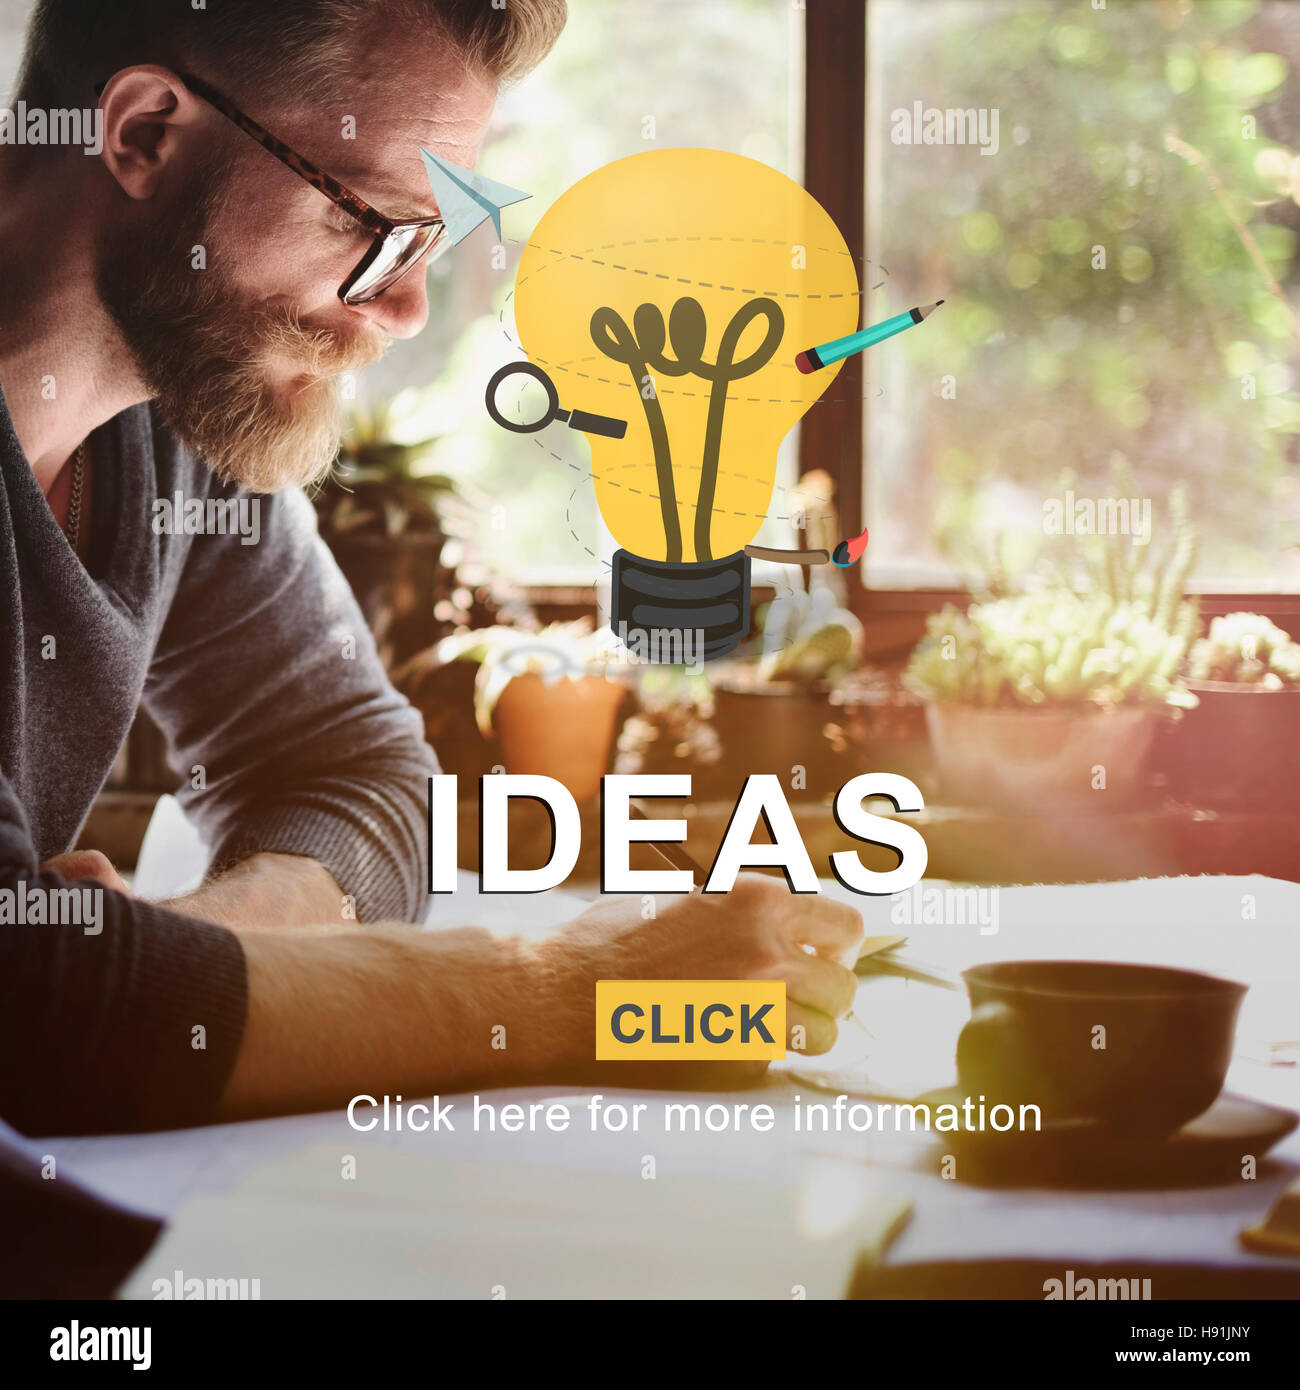 Ideas Proposition Strategy Suggestion Tactics Concept - Stock Image